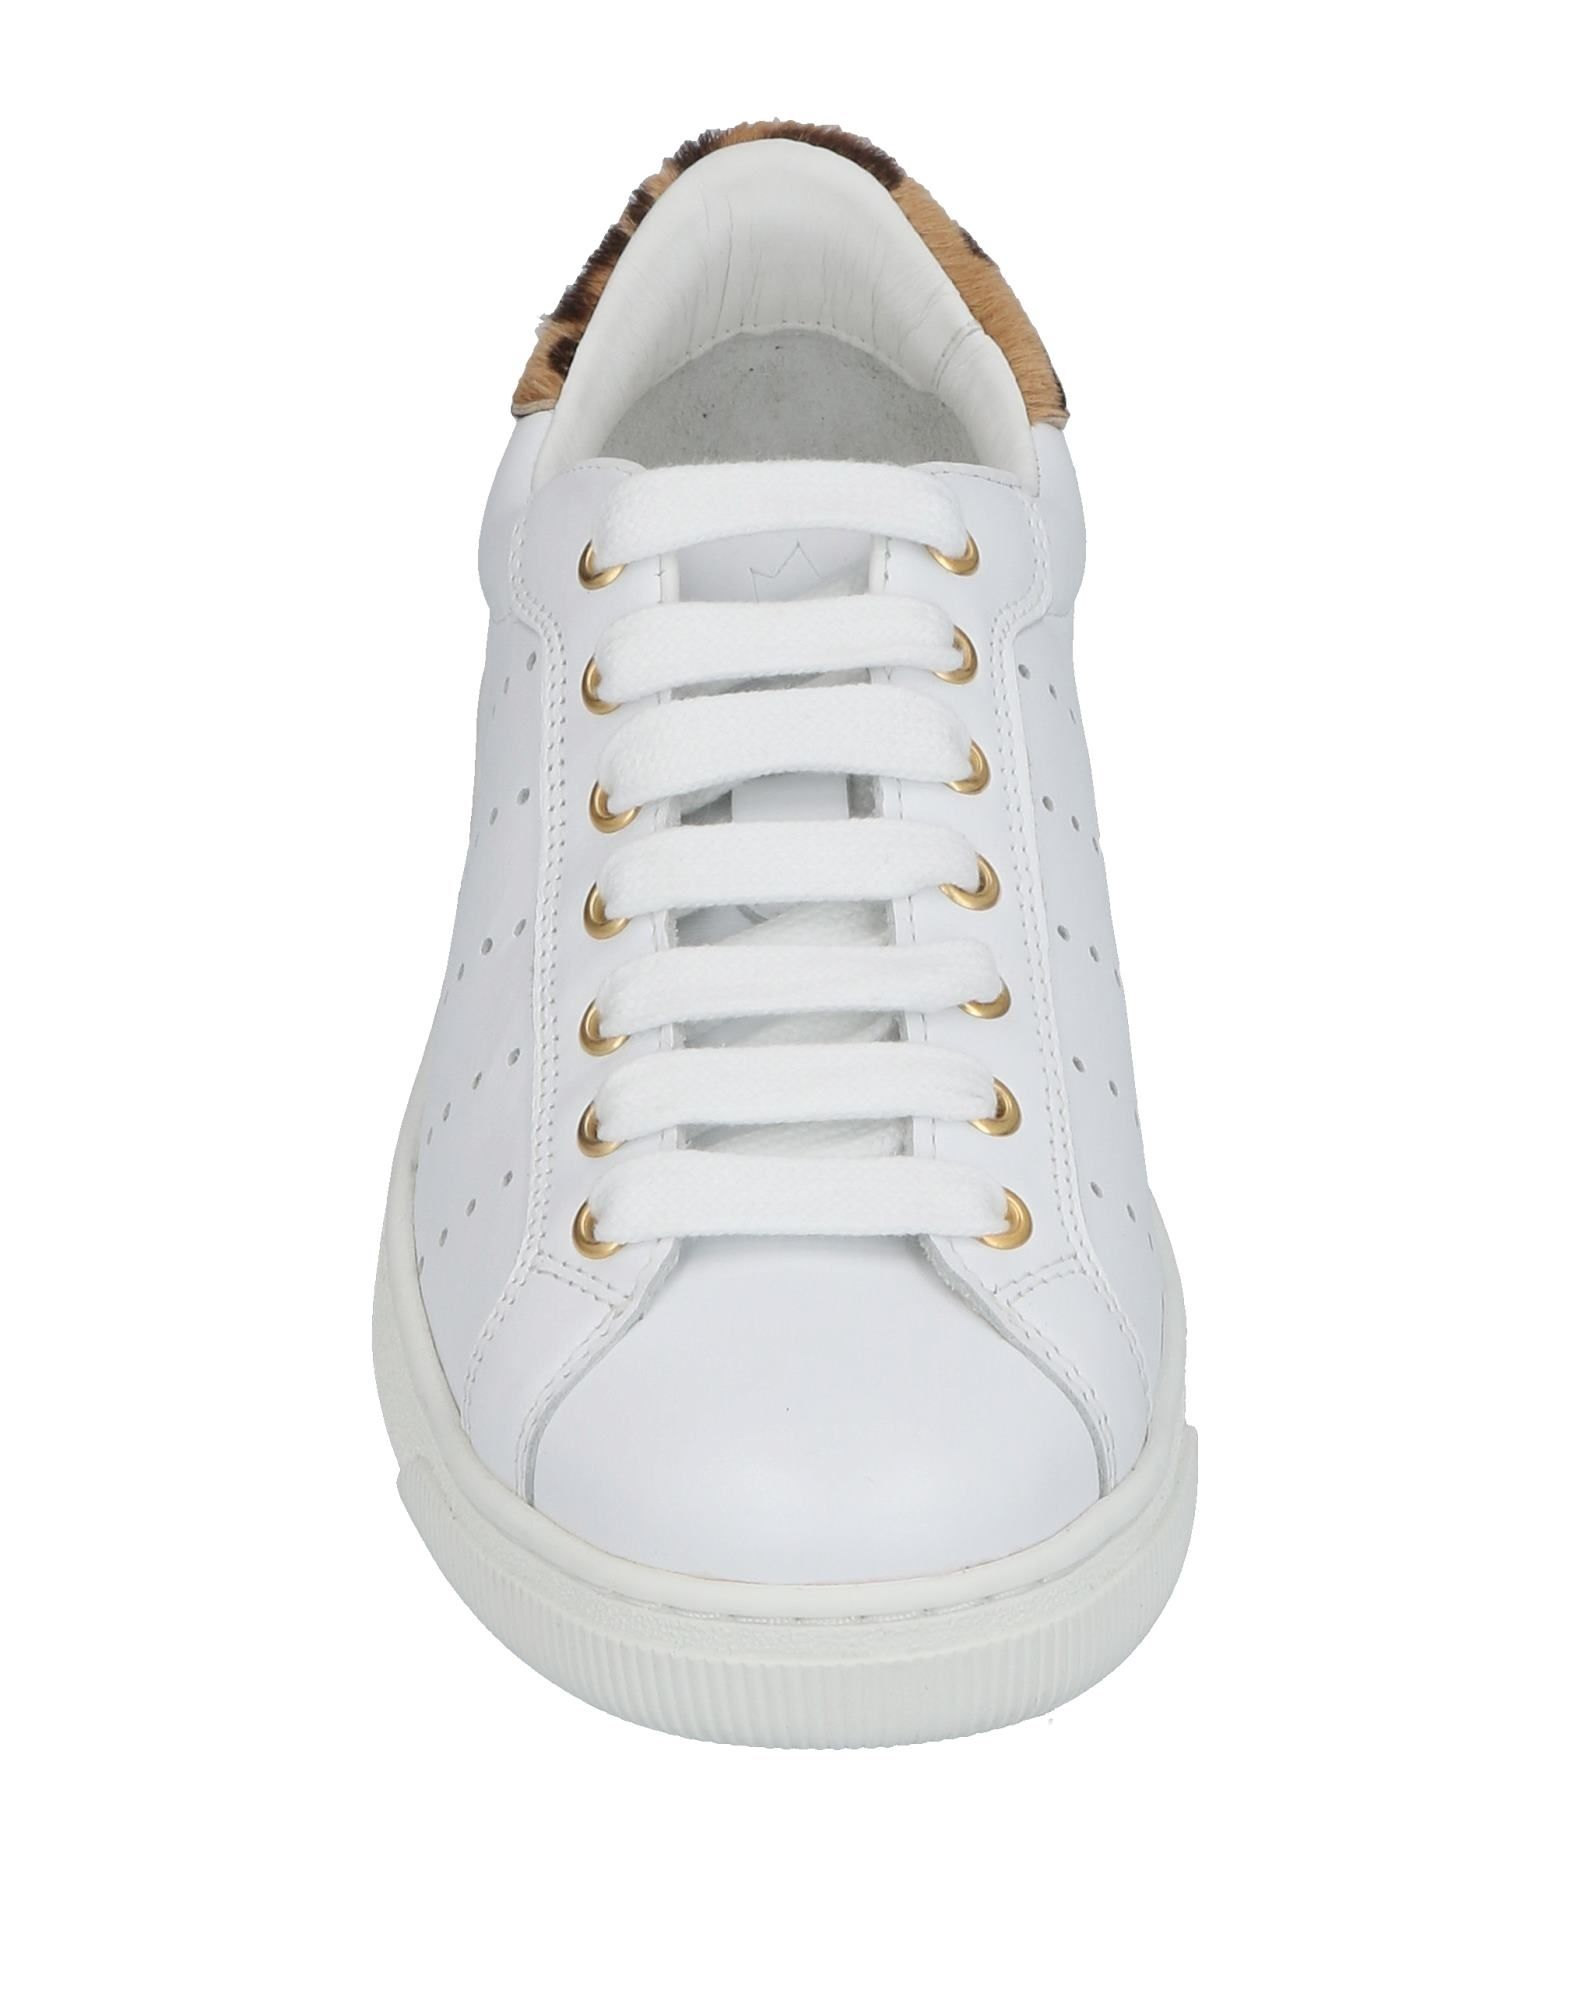 Sneakers Dsquared2 Femme - Sneakers Dsquared2 sur ...